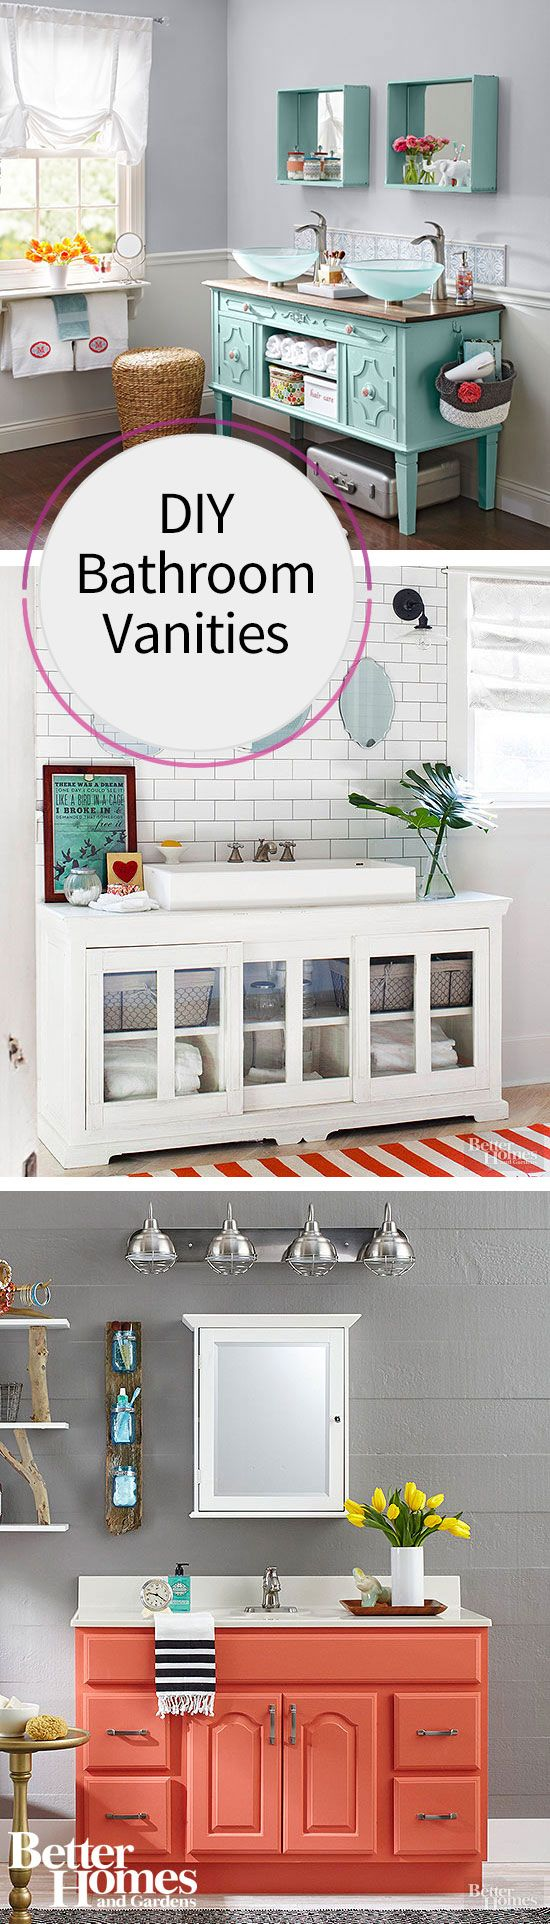 Make Photo Gallery  Ideas for a DIY Bathroom Vanity